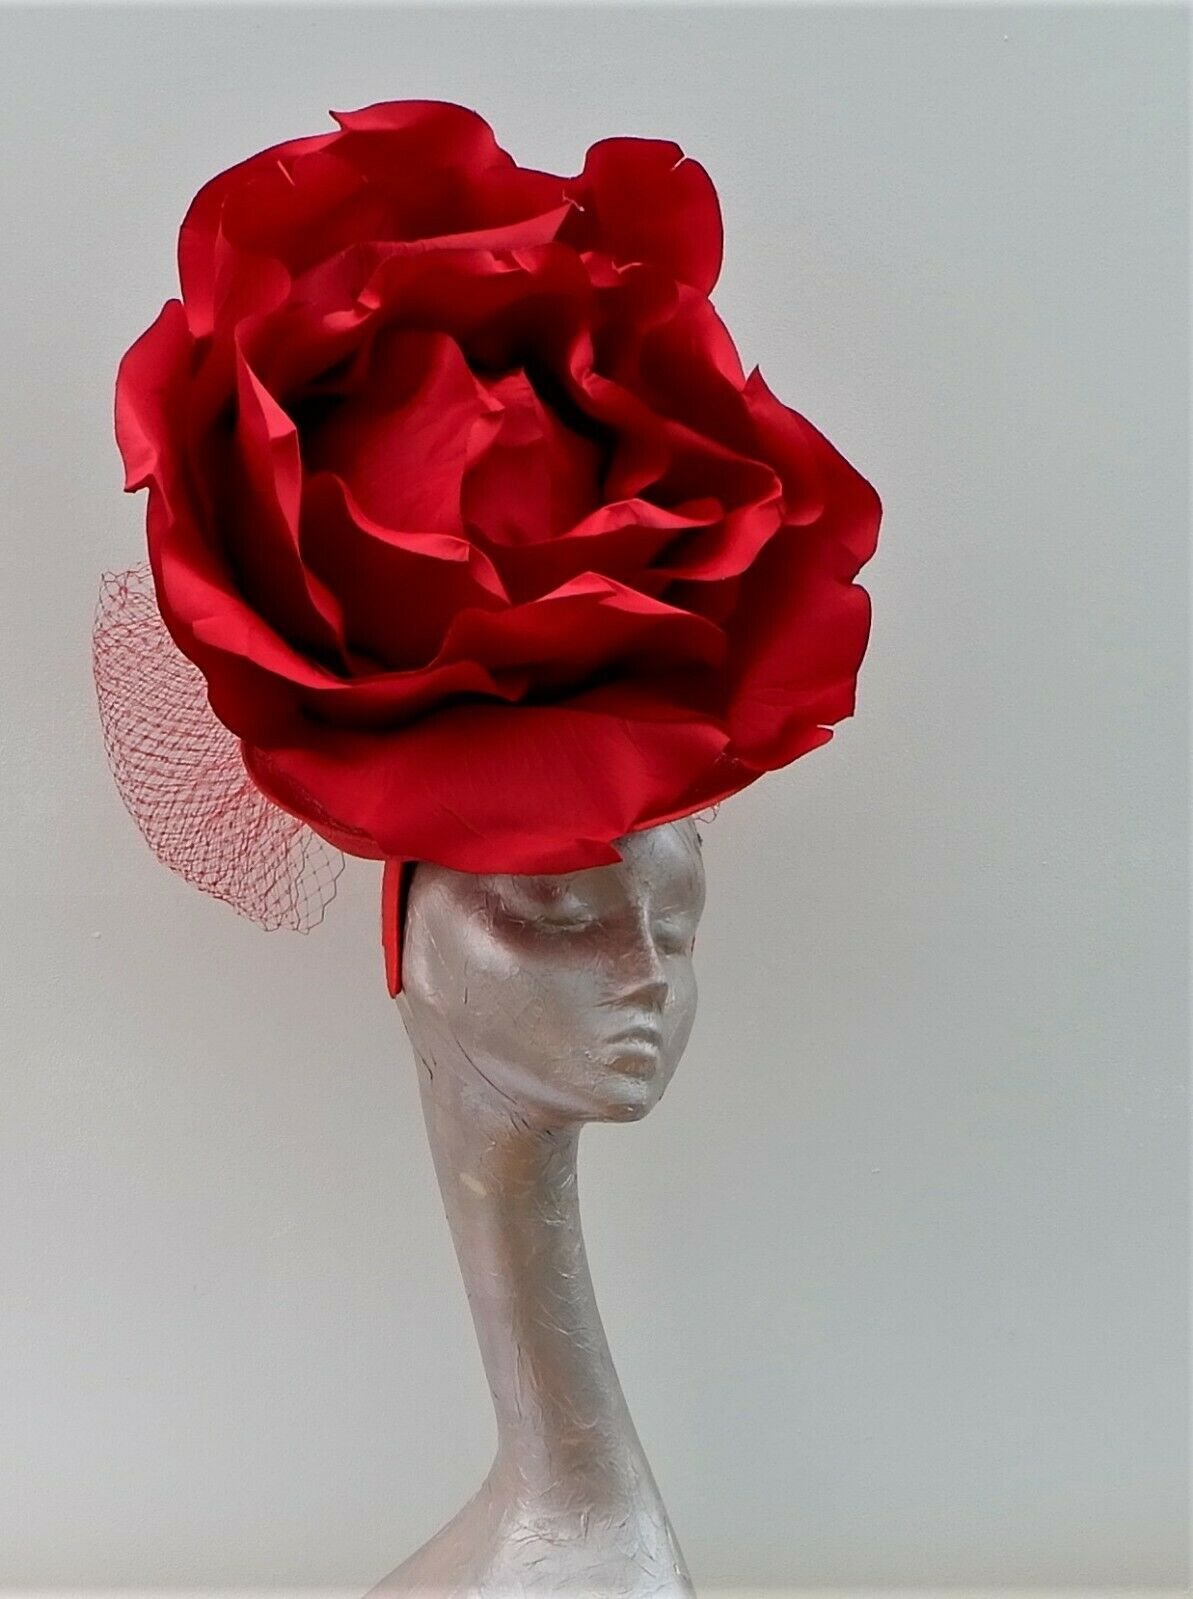 GIANT 50CM RED ROSE FASCINATOR IDEAL FOR ASCOT BY HATS2GO MADE TO ORDER